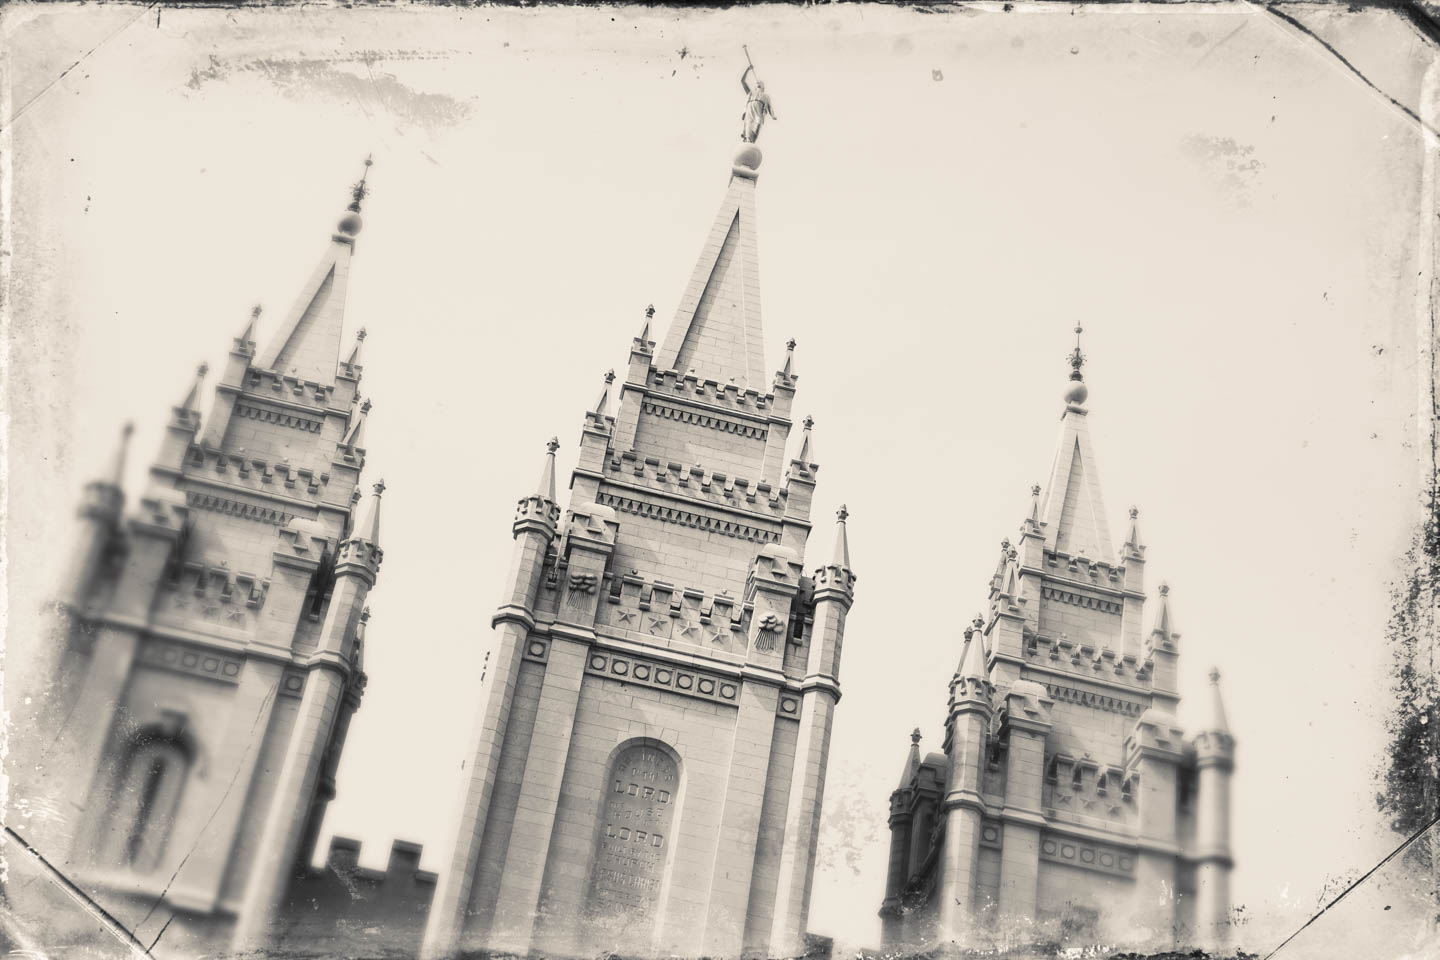 Using software to make a wet plate of the Salt Lake Temple